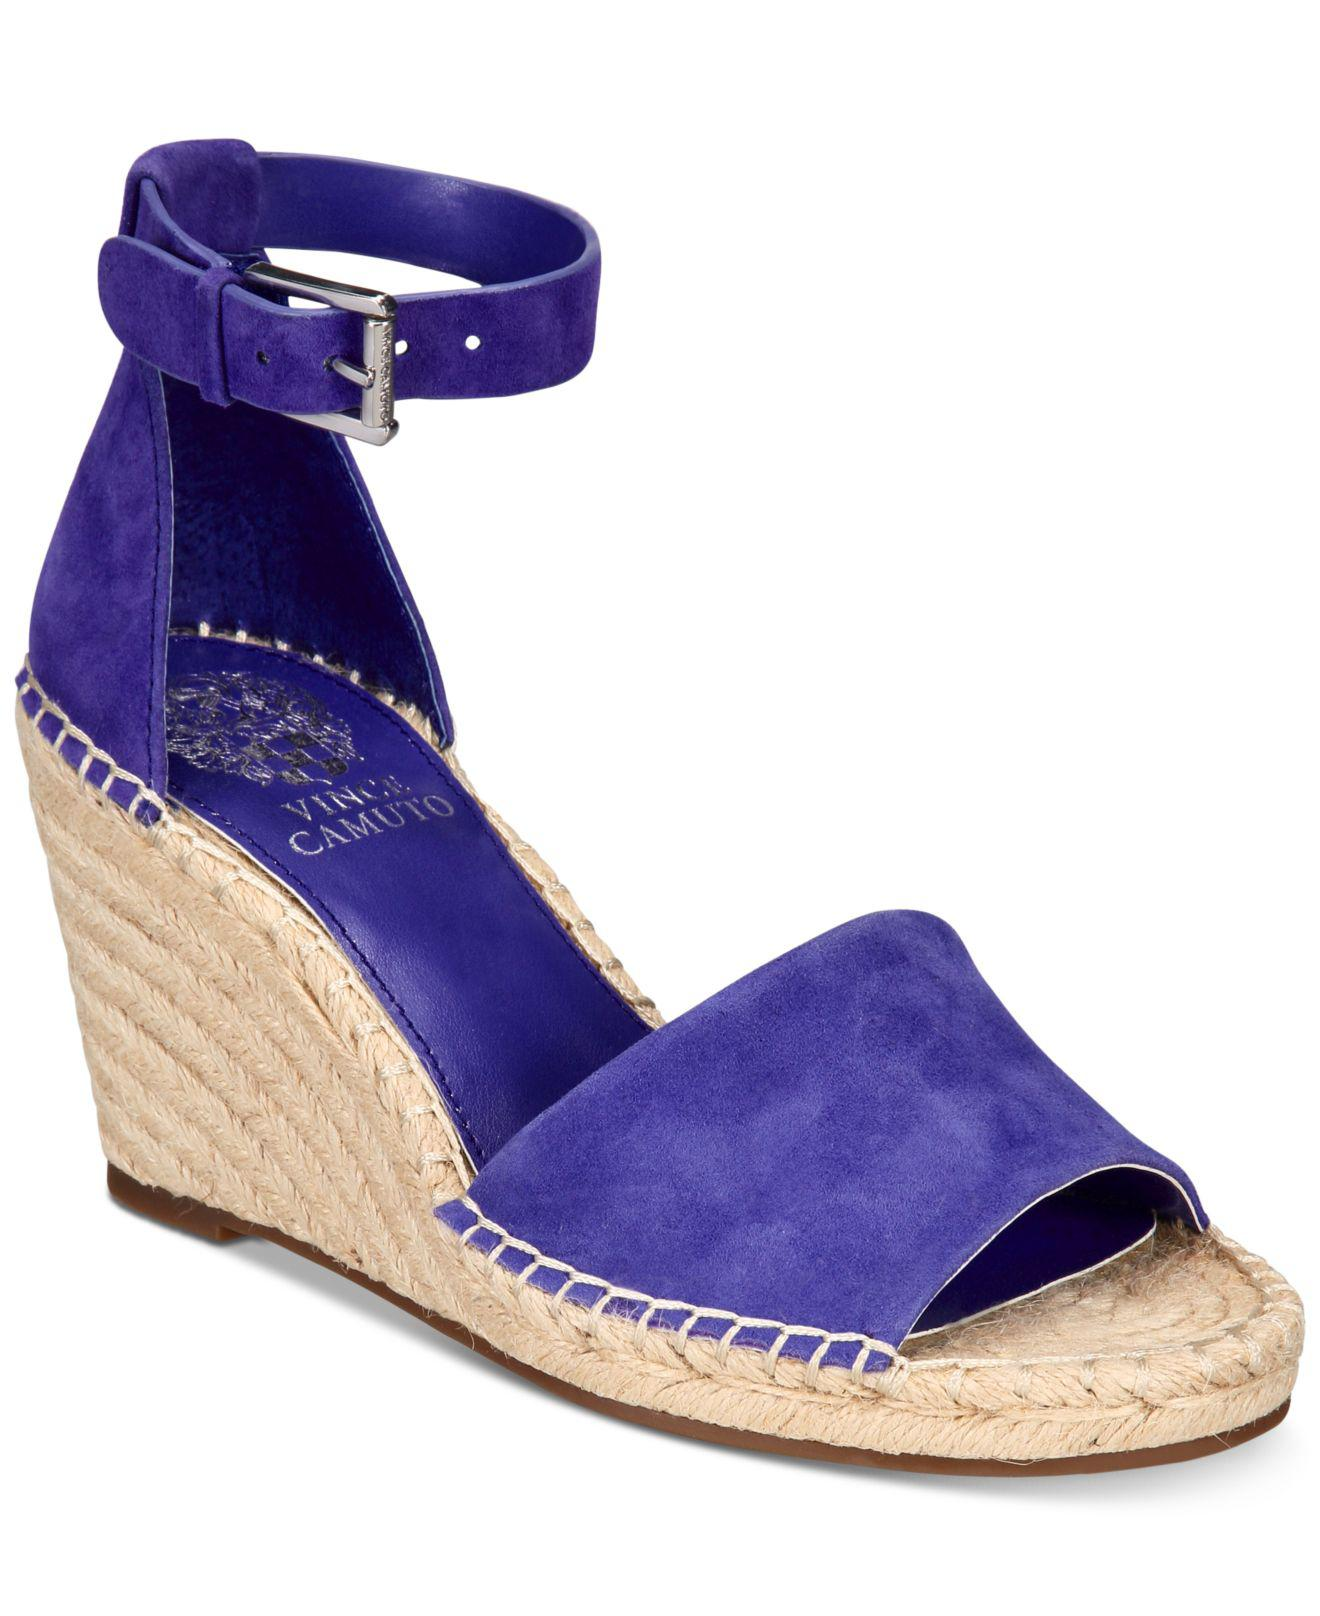 cc40808f351 Lyst - Vince Camuto Leera Espadrille Wedge Sandals in Purple